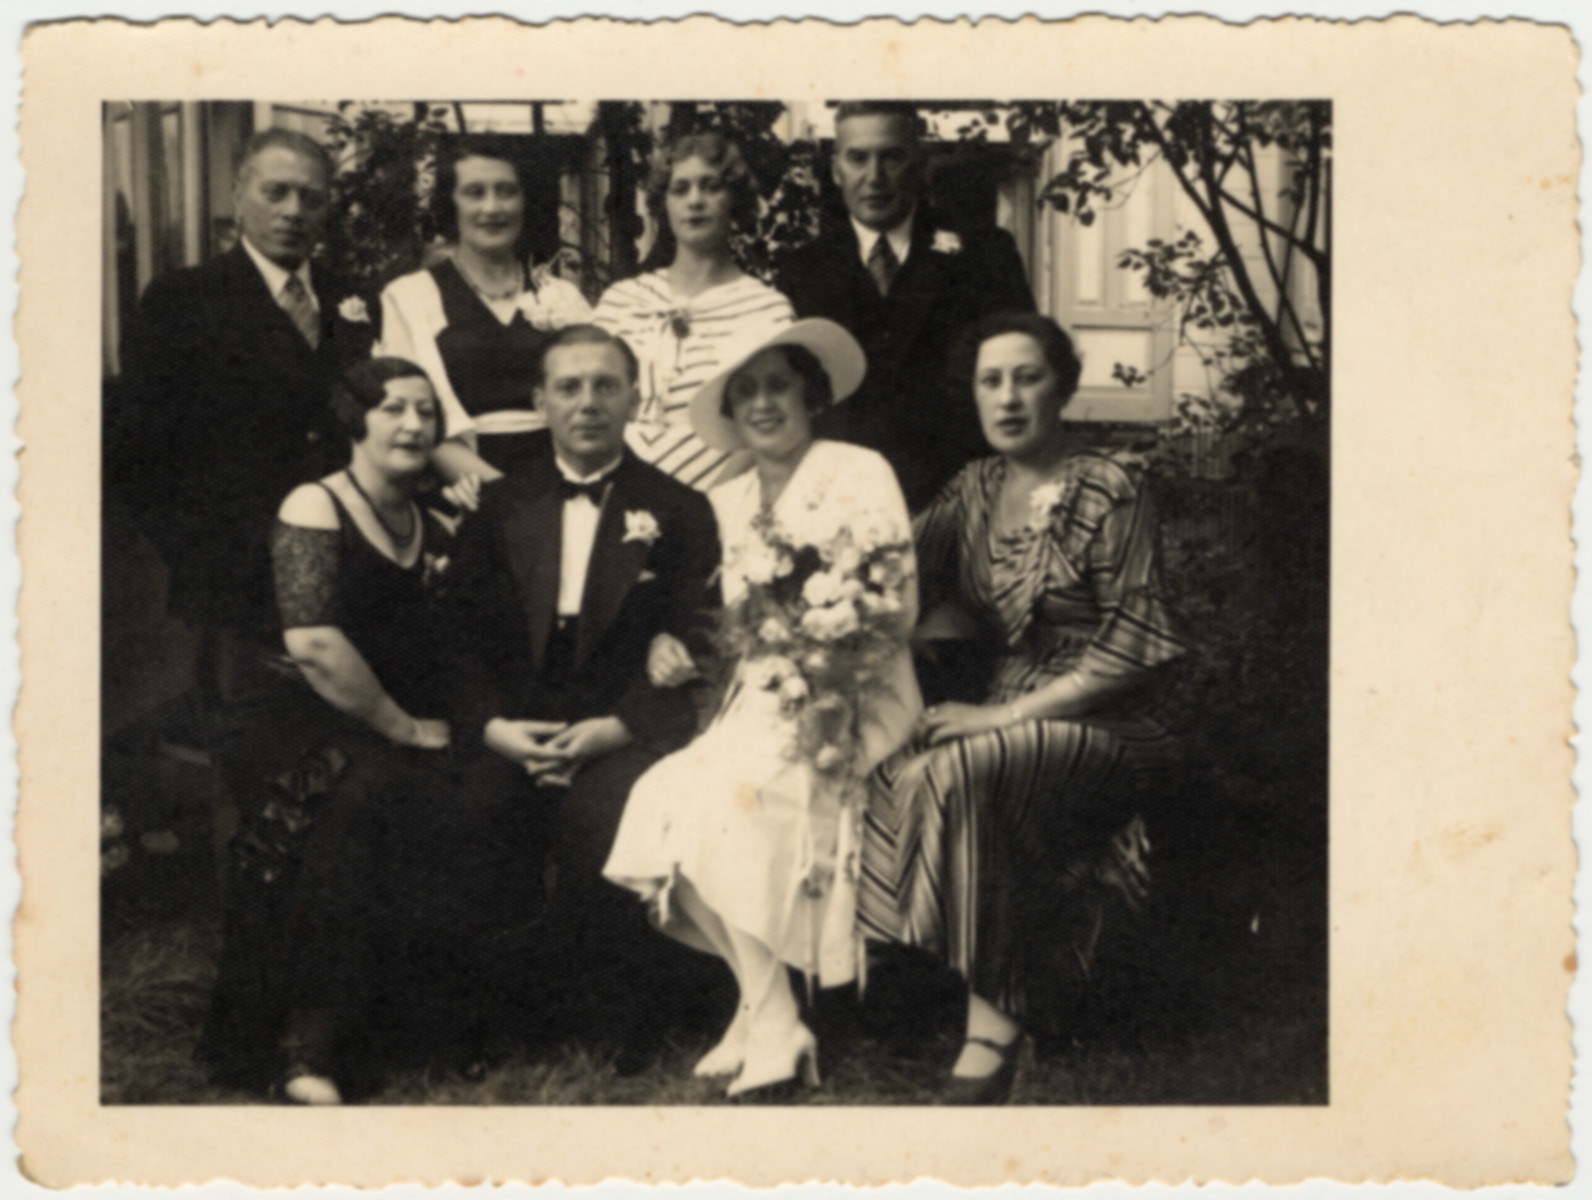 Wedding portrait of a Latvian Jewish family.  Seated from left to right are: Erna Taub Schwab (wife of Leo Schwab), Gustav Smitkowski, the bride Raja Taub Smitkowitzi, and another Taubchen Taub .  Klara and Arkadi Jakob Schwab are standing in the back right.